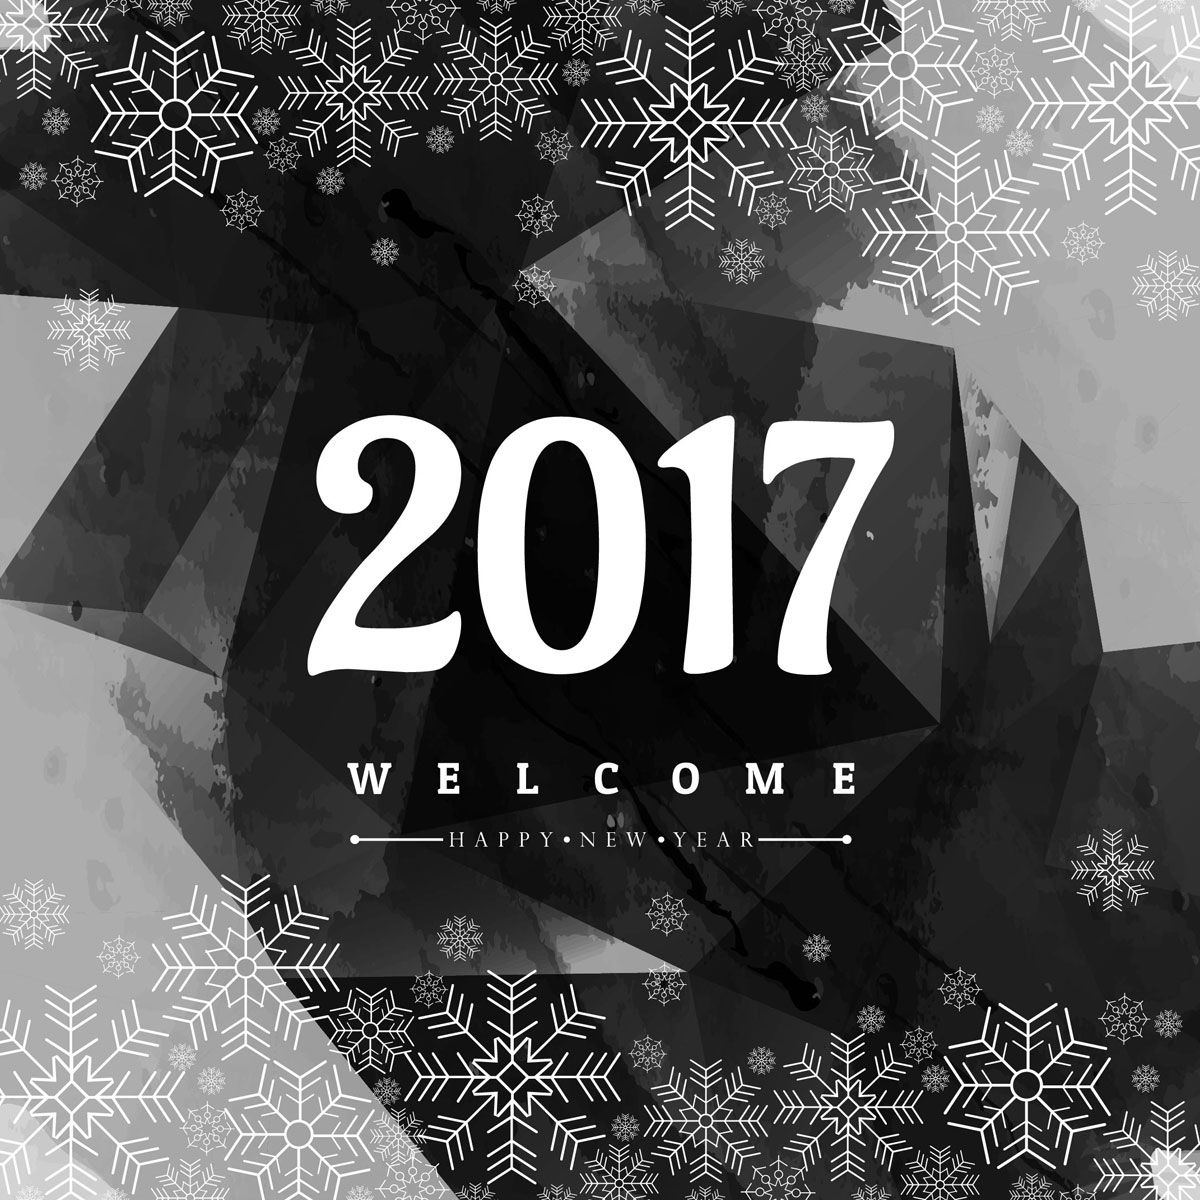 10 Best Happy New Year 2017 HD Wallpapers | Happy New Year ...